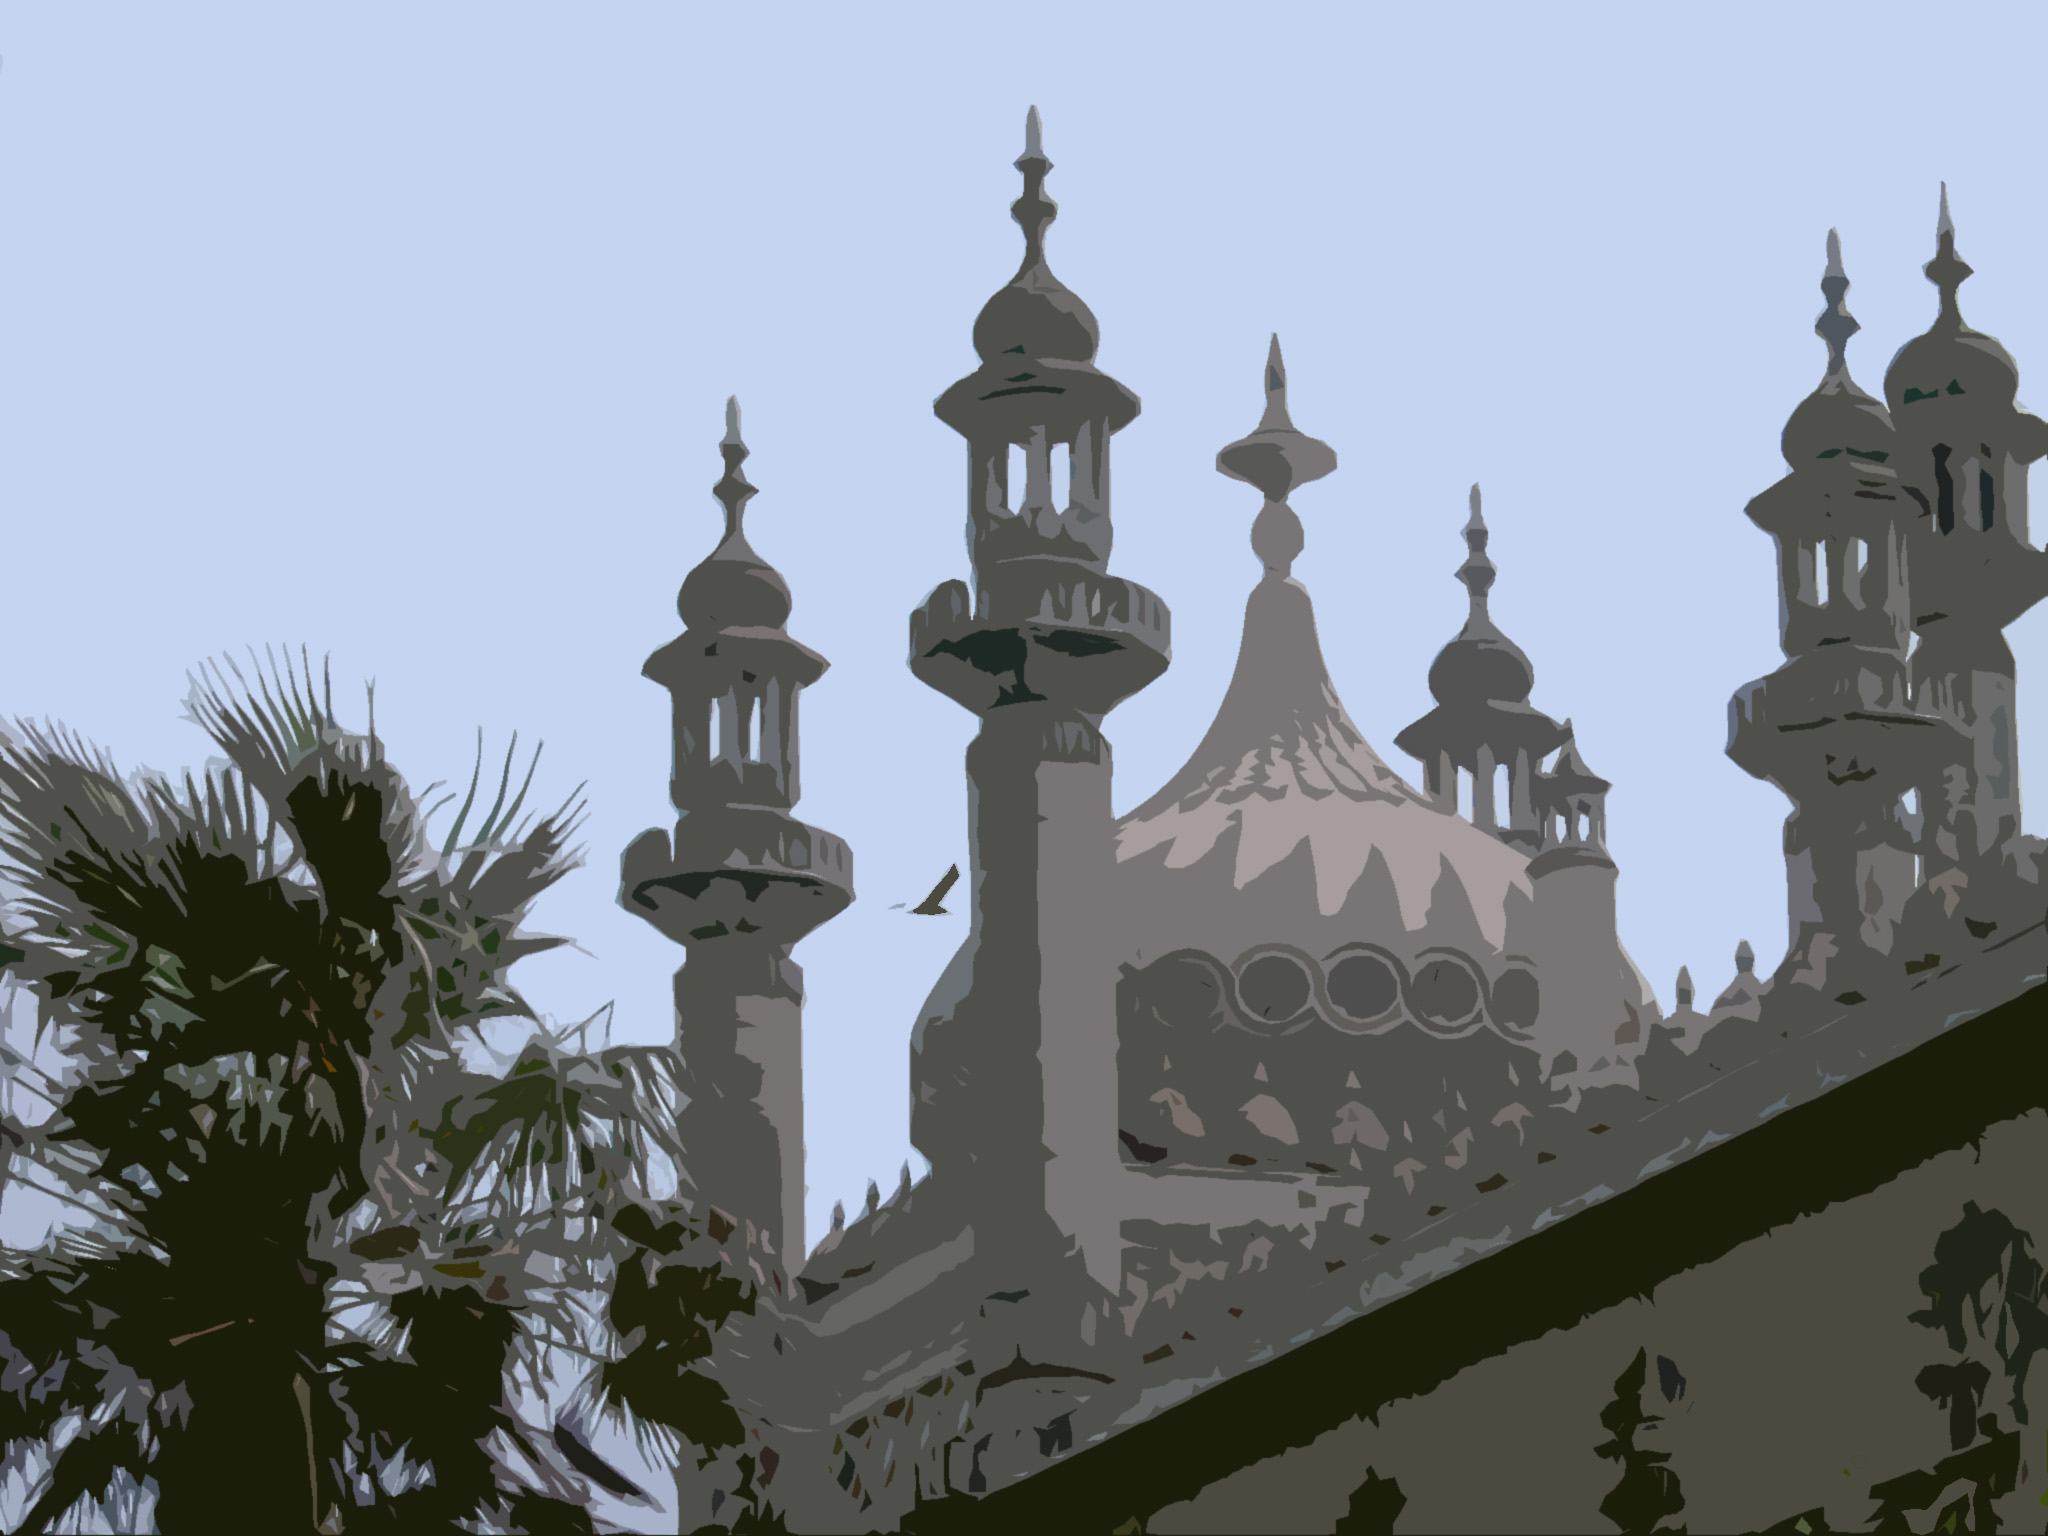 brighton pavilion illustrated